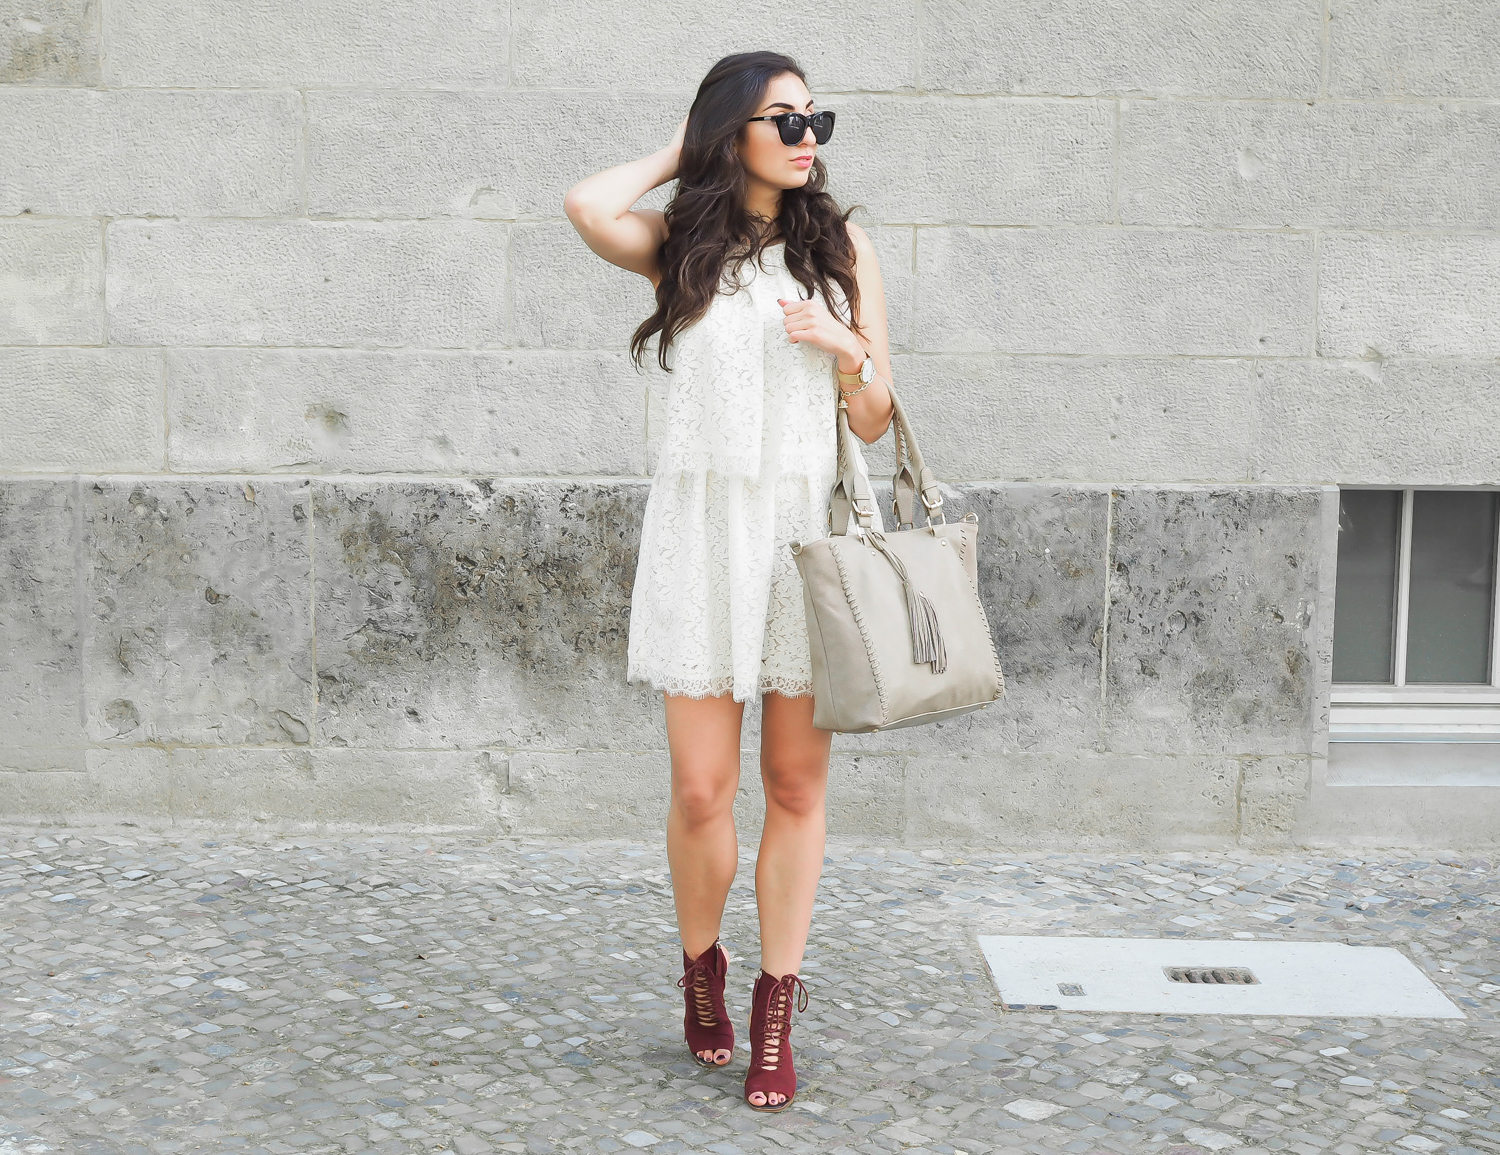 taupe oasis shoppe mango lace minidress zara lace-up sandals bordeaux high heelsBerlin Fashion Week Outfit le specs halfmoon magic sunglasses girl streetstyle modeblog berlin samieze